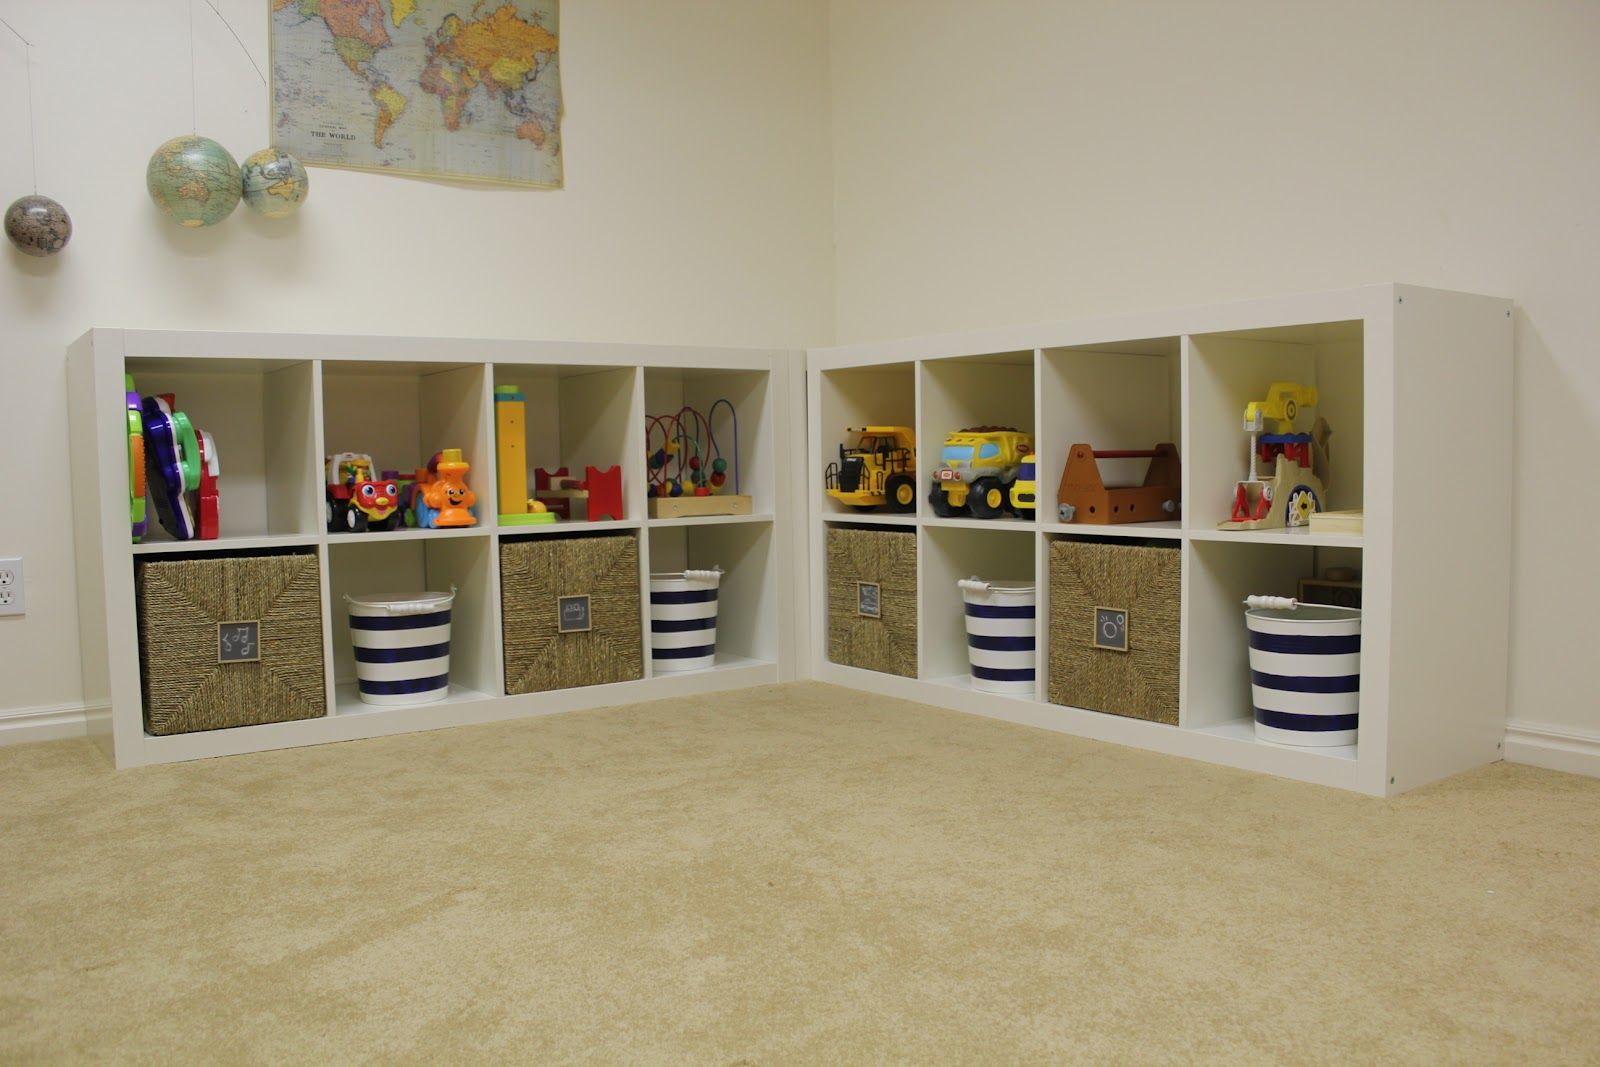 Kids Shelves With Baskets   Also Got 4 Knipsa Baskets From Ikea That